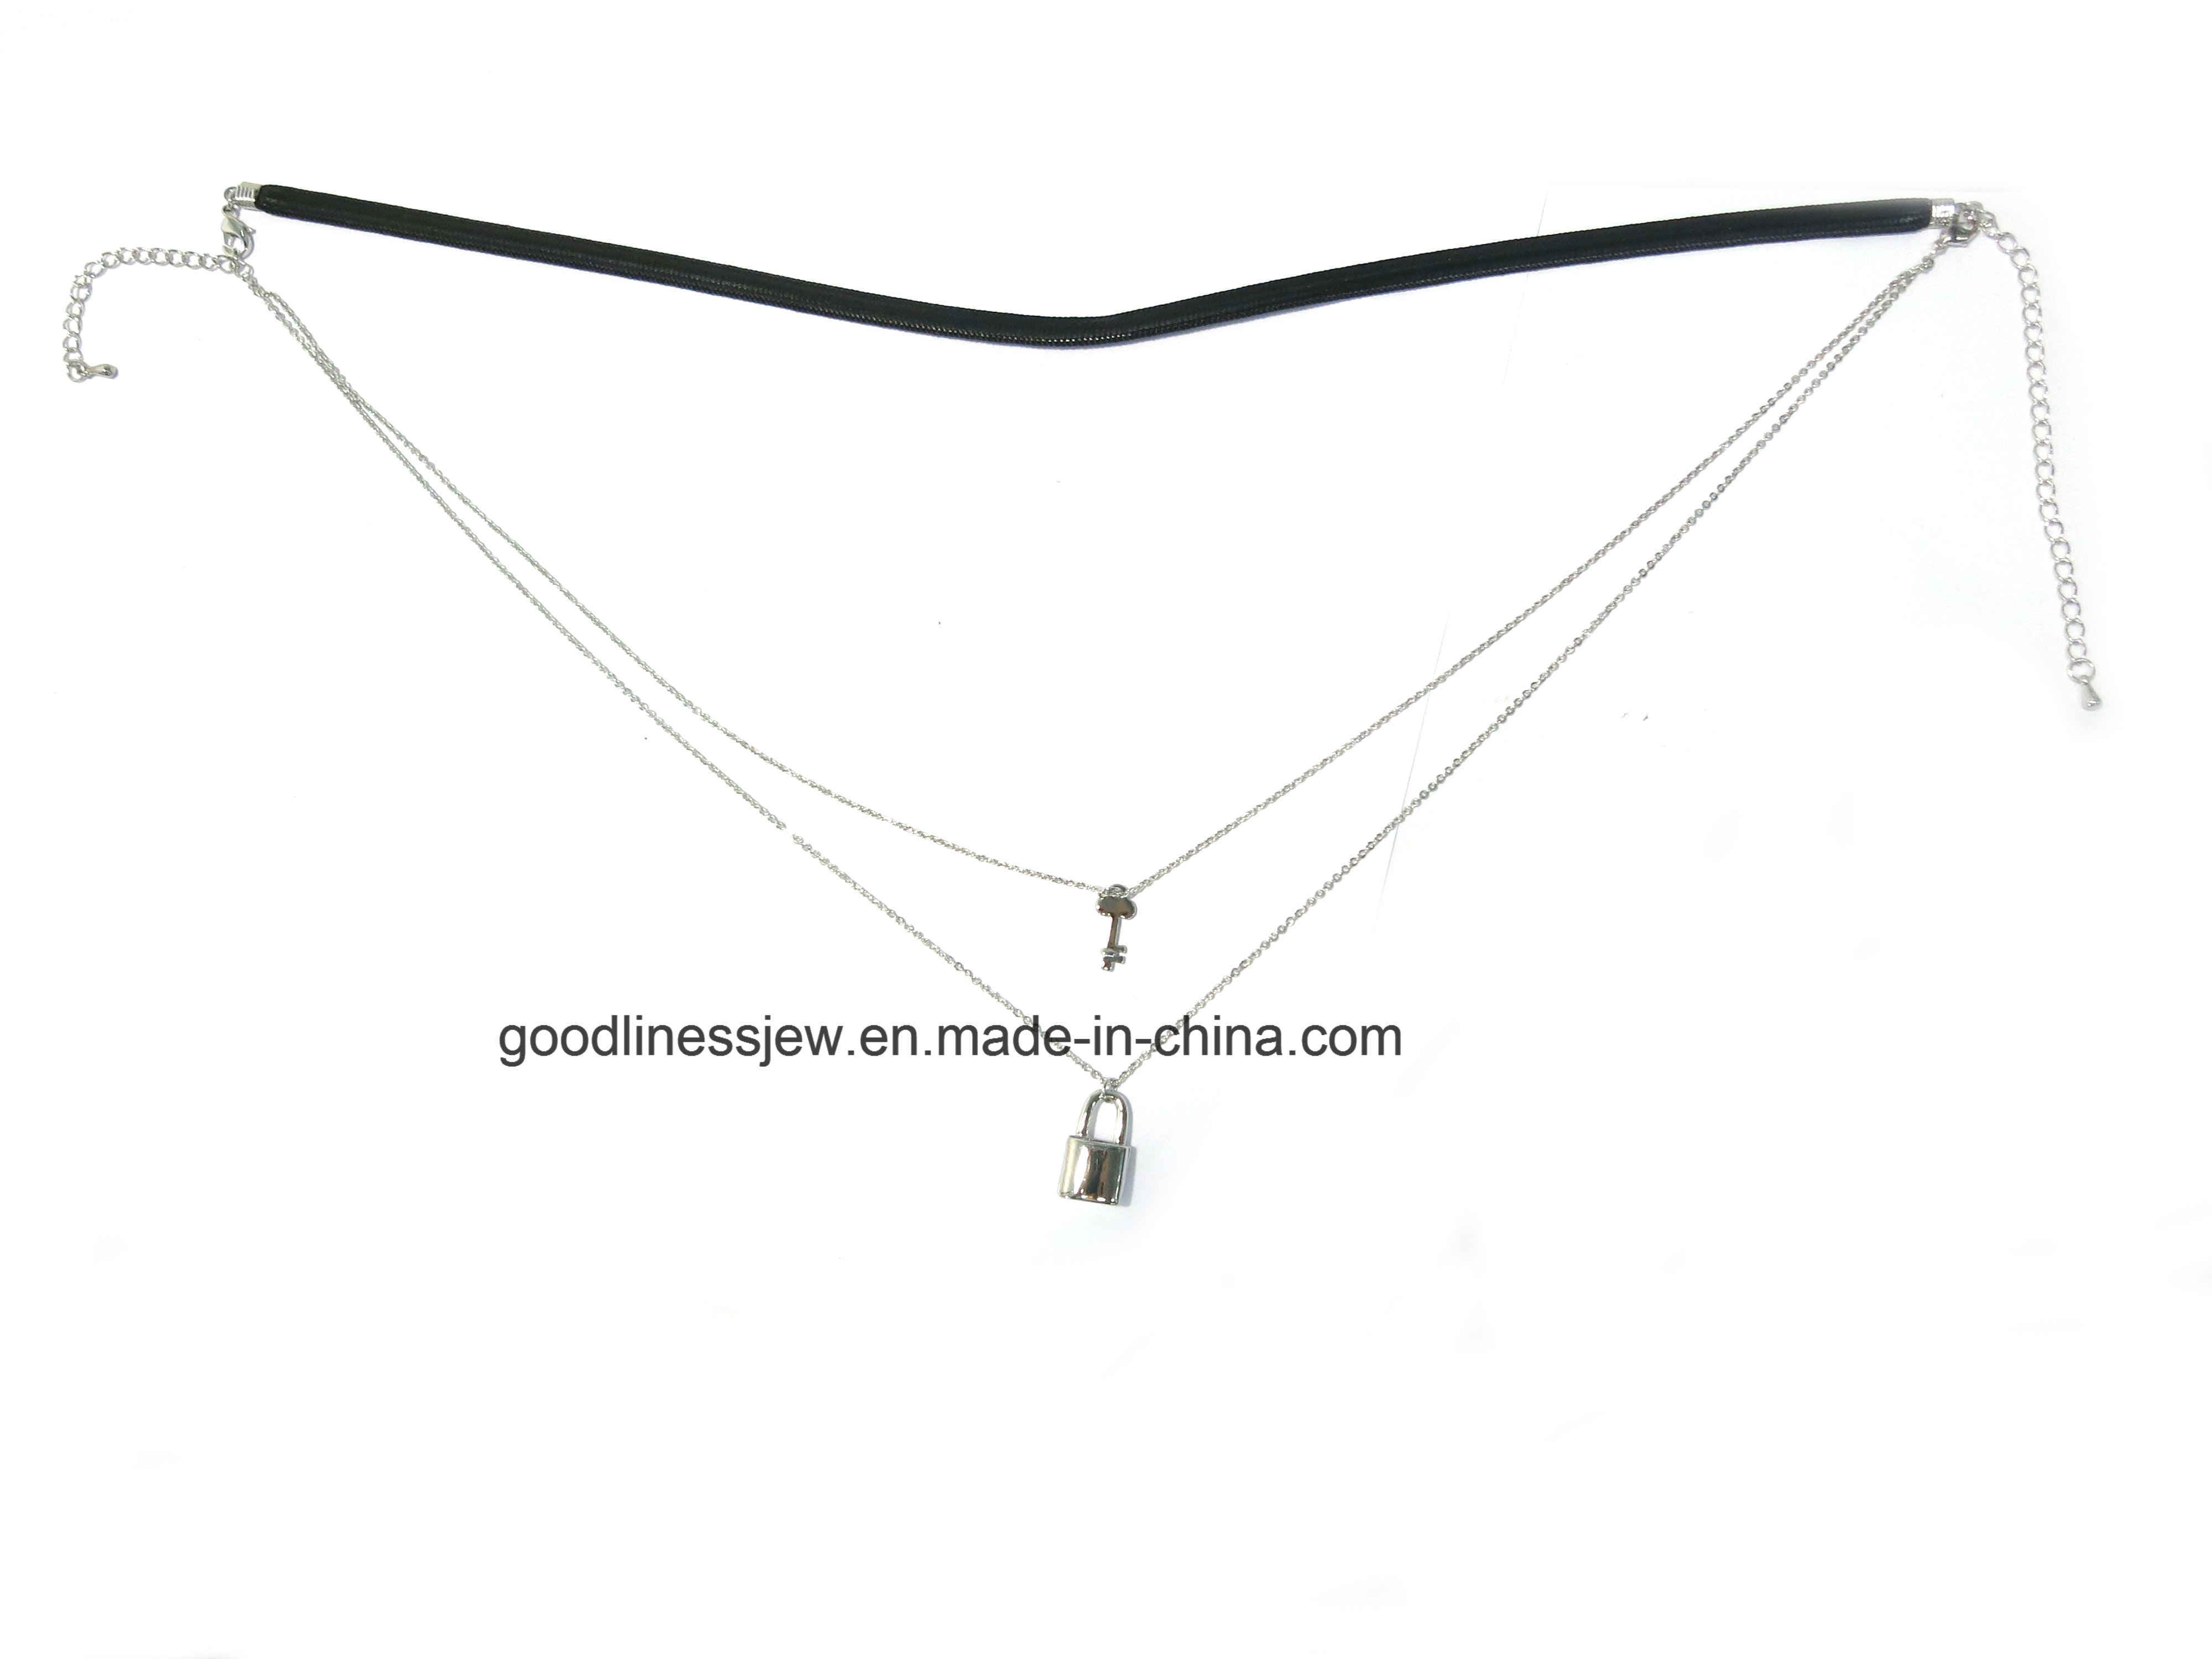 Special Design Fashion Leather Sterling Silver Necklaces Leather Chain with  Round Shape Pendant Women Necklaces N6861 9d1c8b5e27f2